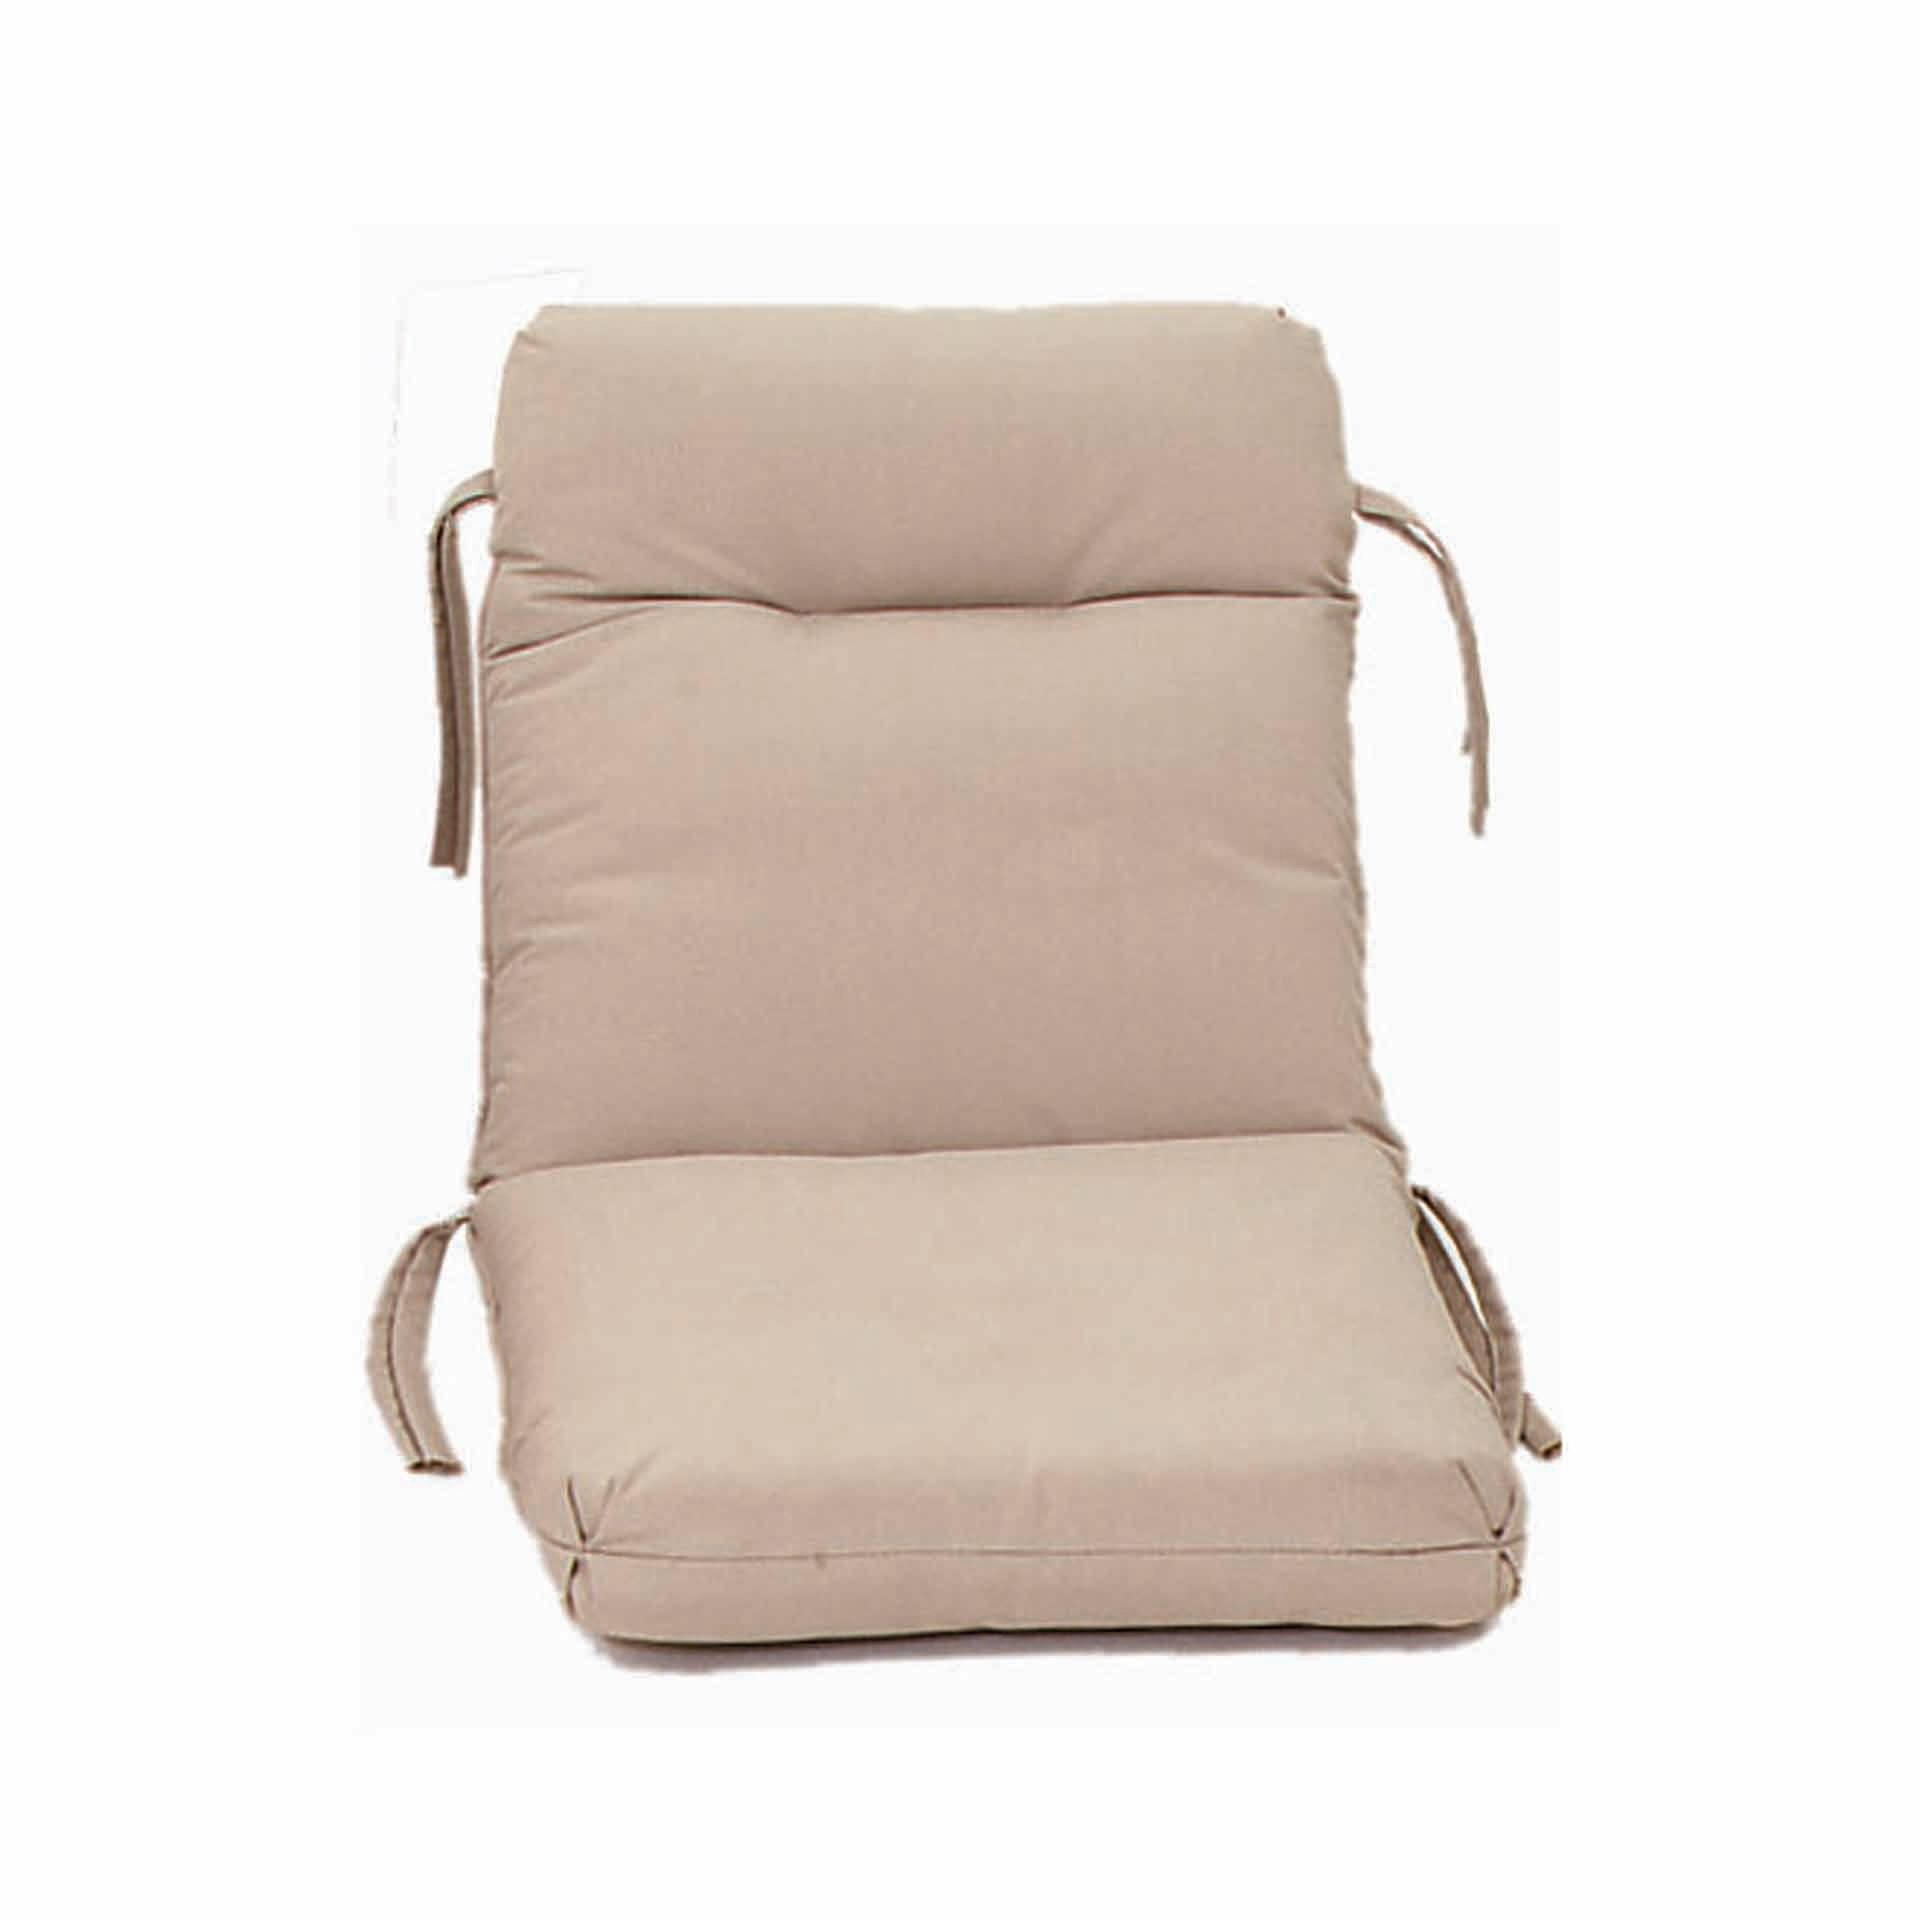 Sunbrella Seat Cushions | Sunbrella Chair Cushions Outlet | Sunbrella Outdoor Seat Cushions